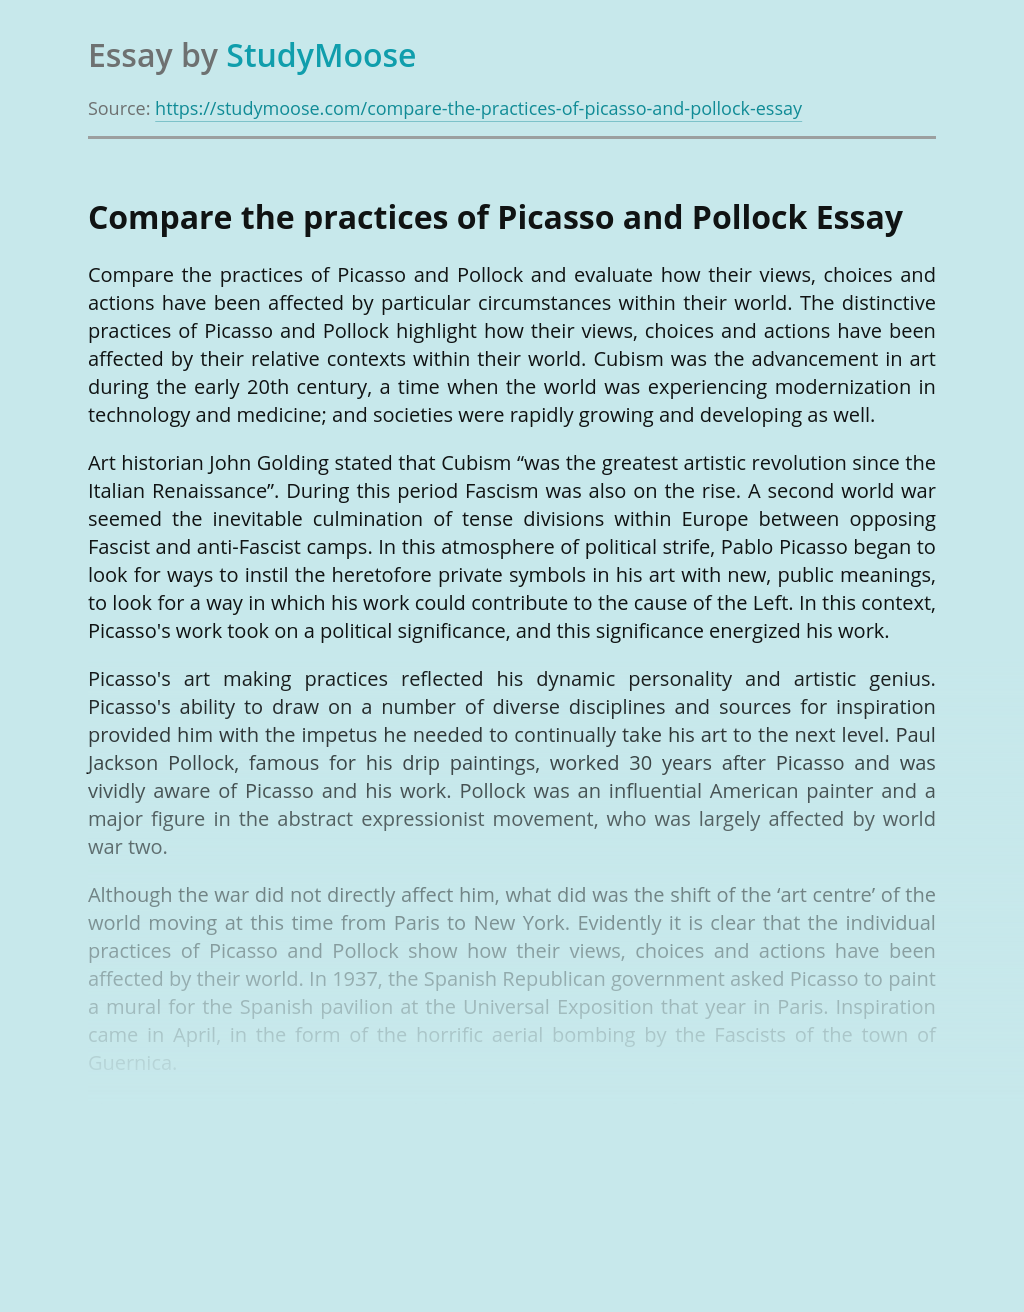 Compare the practices of Picasso and Pollock